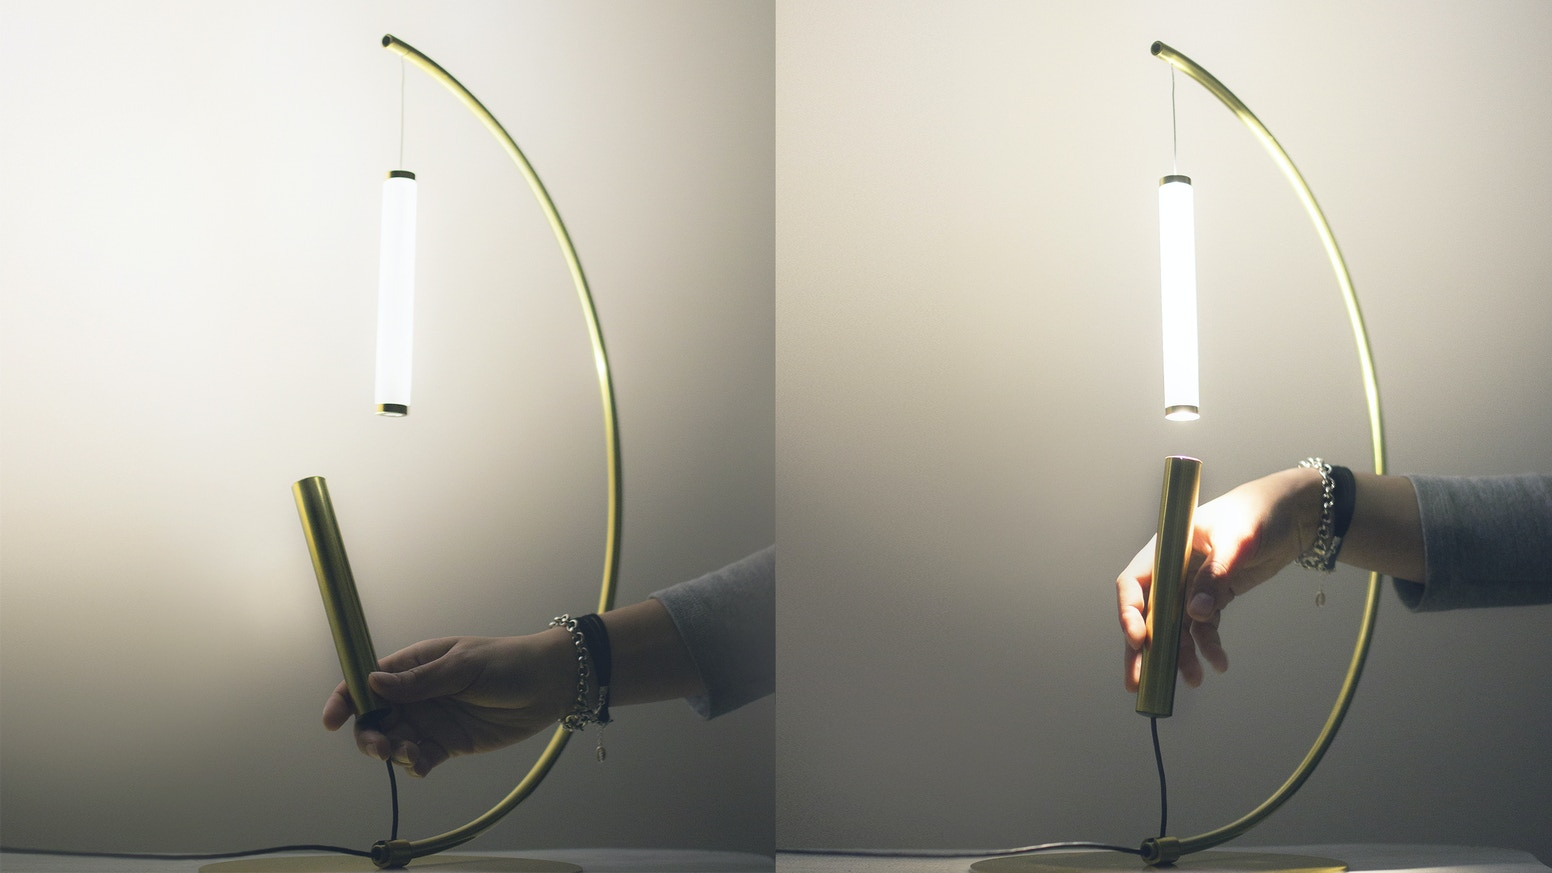 A mind-blowing lamp that plays on gravity and magnetic attraction and creates an intriguing and magic atmosphere in your home